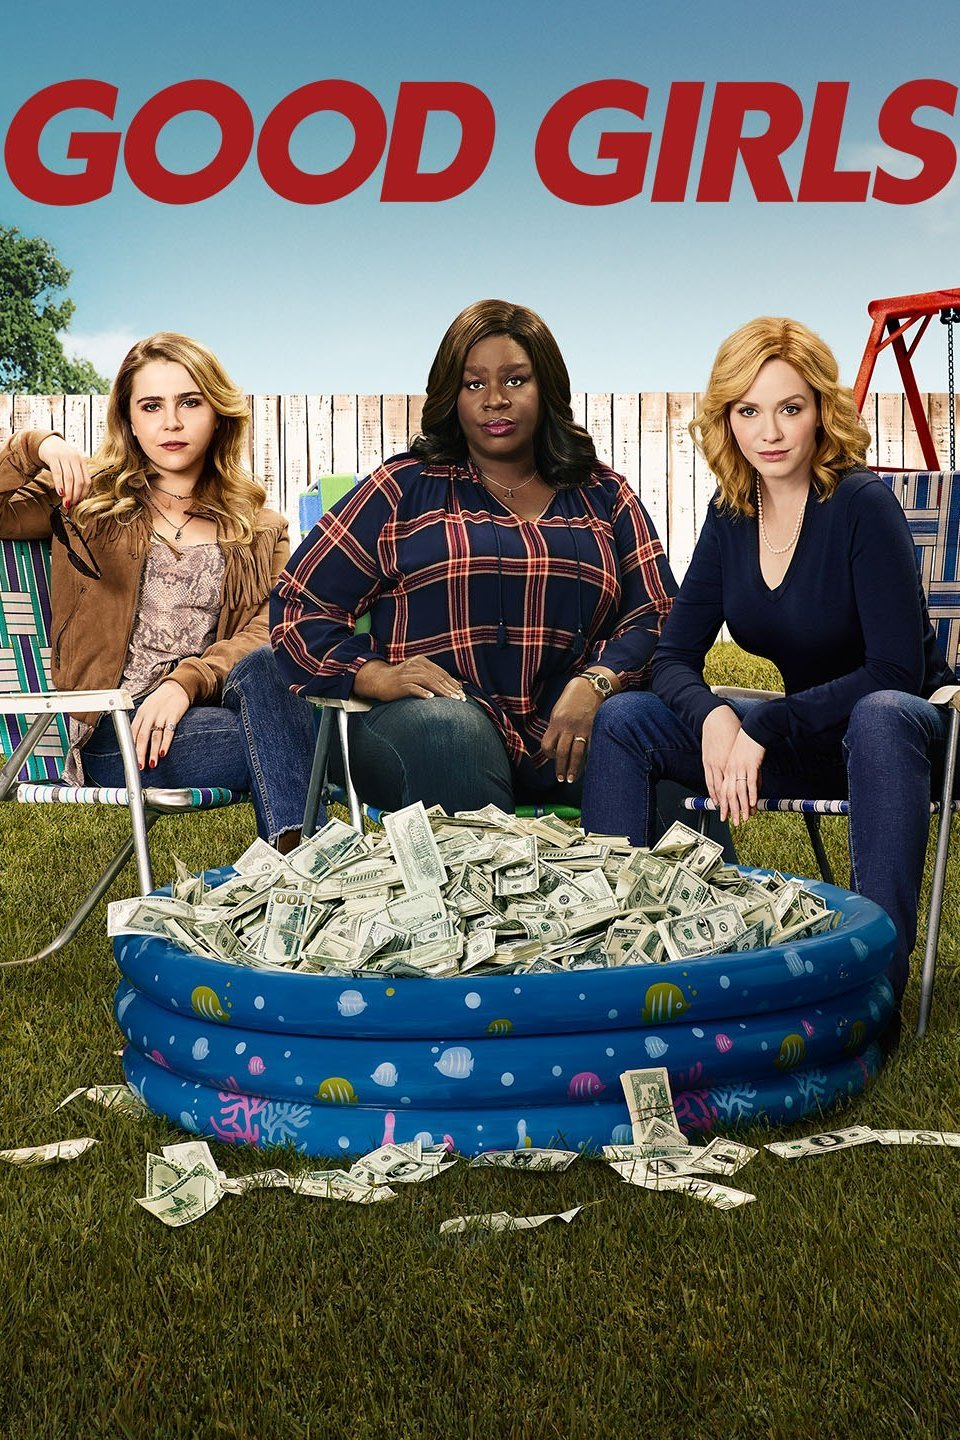 Good Girls Season 1 Episode 4 Download WebRip 480p & 720p